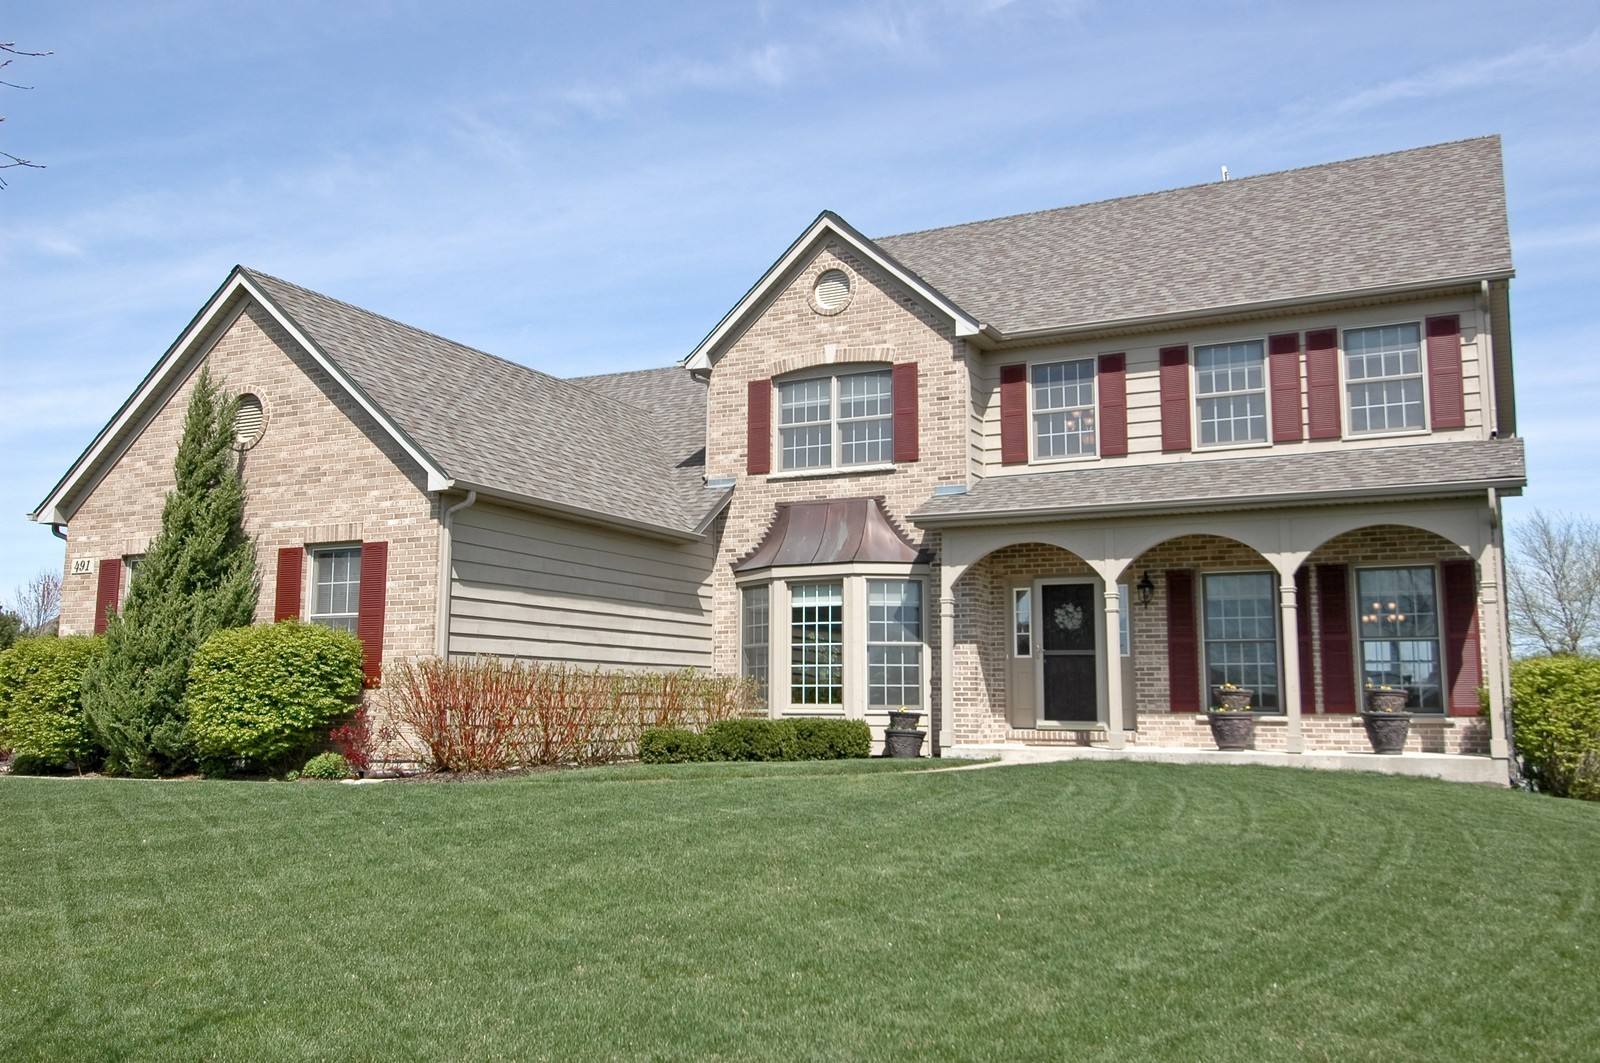 Real Estate Photography - 491 Clover, Algonquin, IL, 60102 - Front View